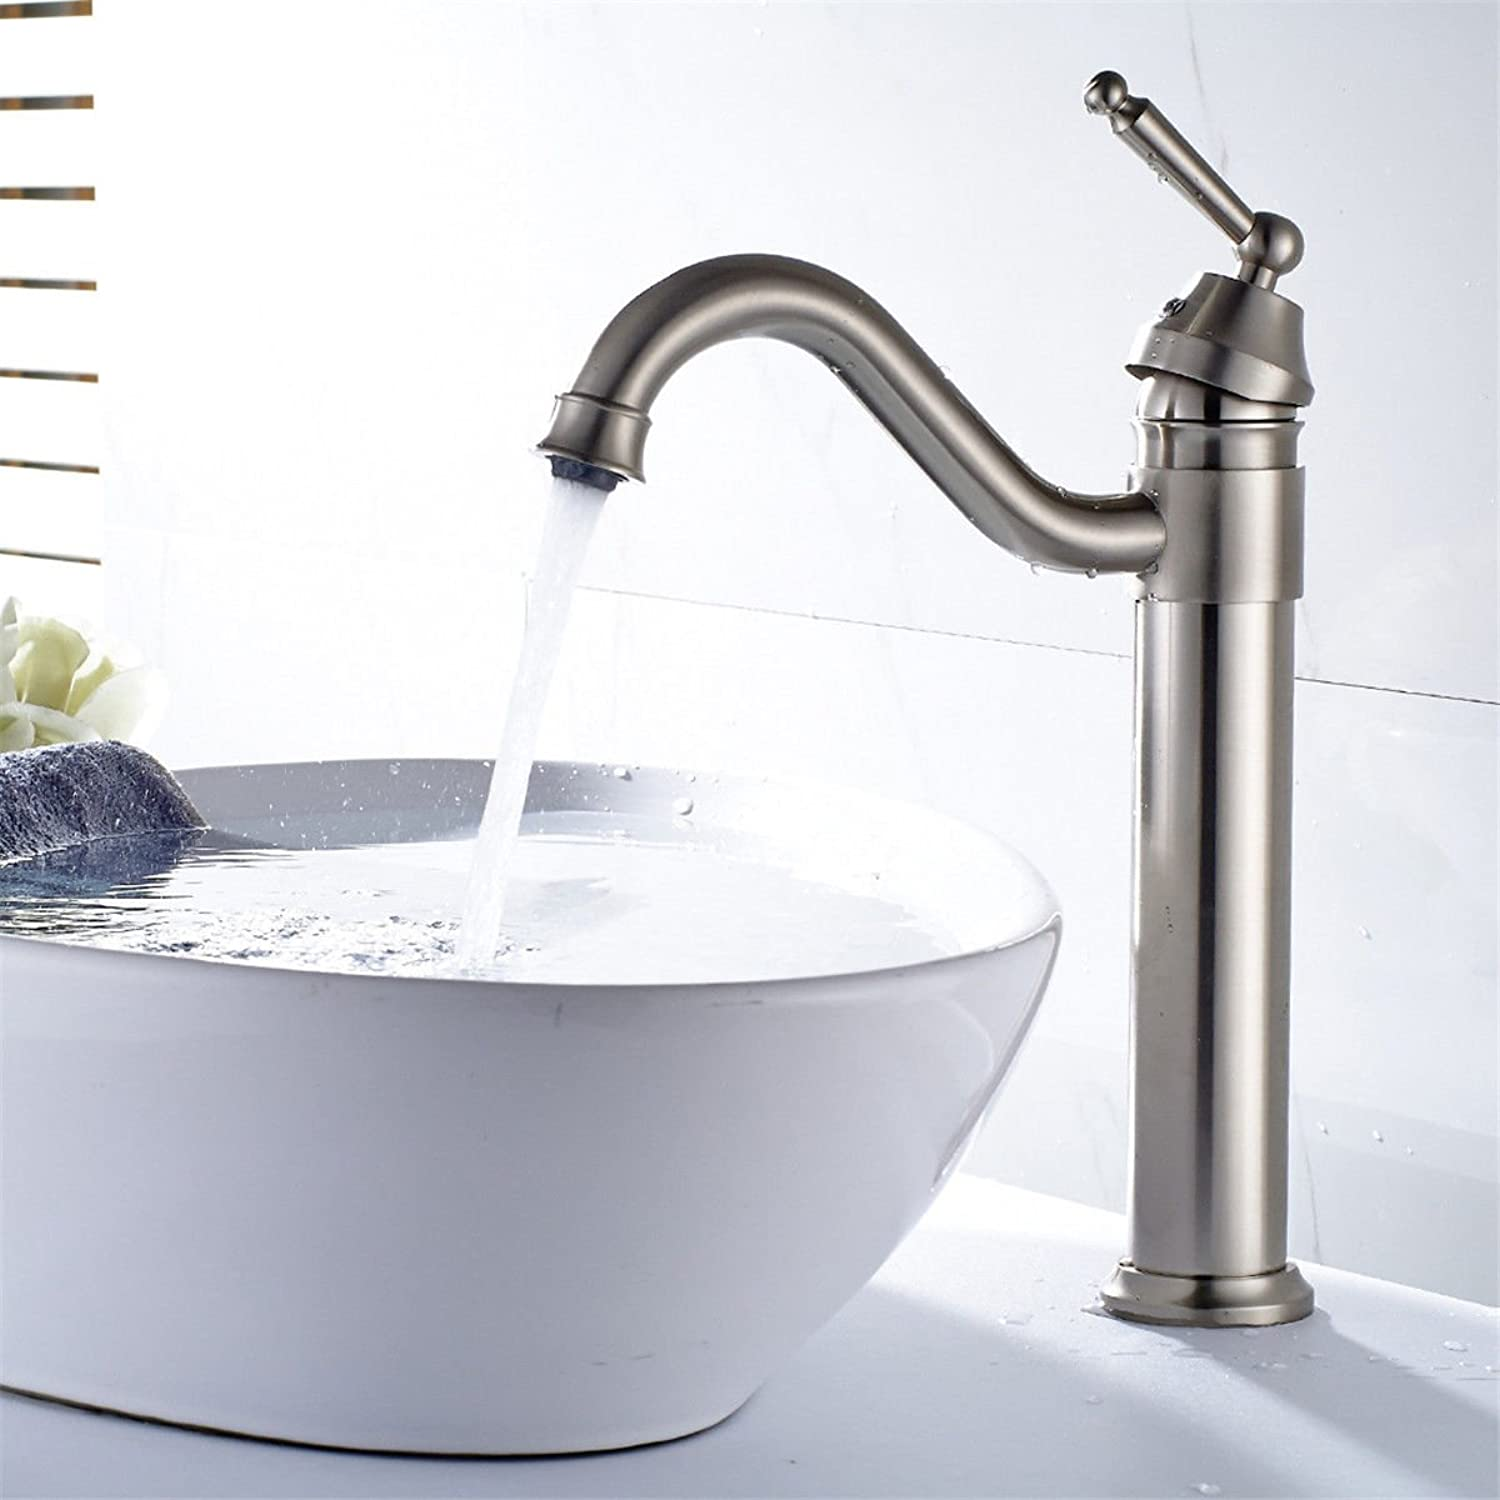 AQMMi Basin Taps Bathroom Sink Faucet Brass Brushed redatable Hot and Cold Water Bathroom Sink Faucet Basin Mixer Tap